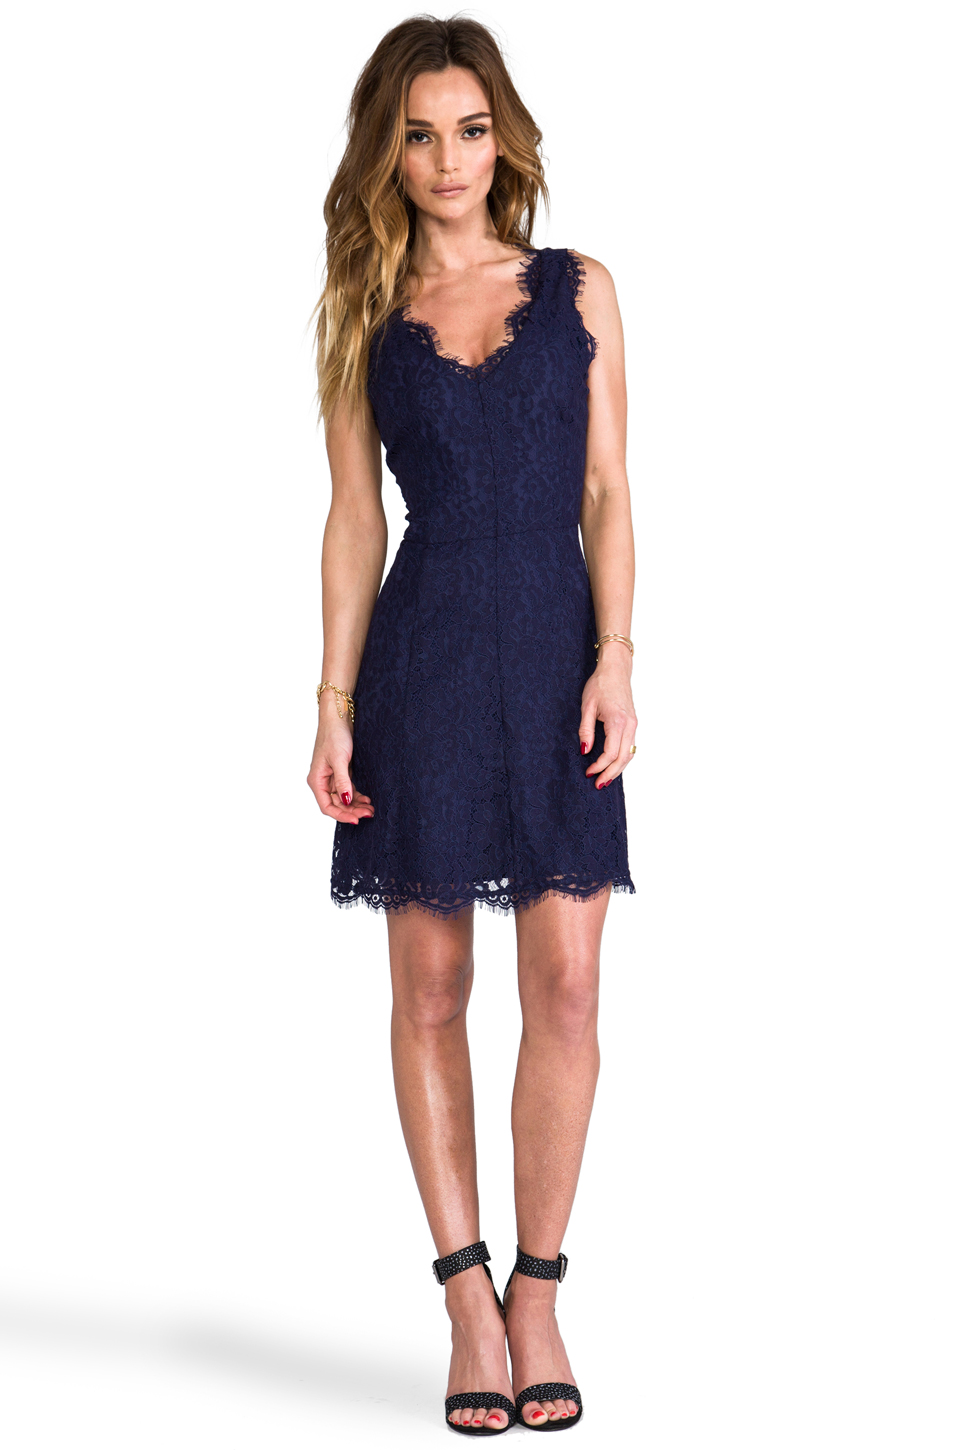 Joie Allover Lace Nikolina B Dress in Royal Navy